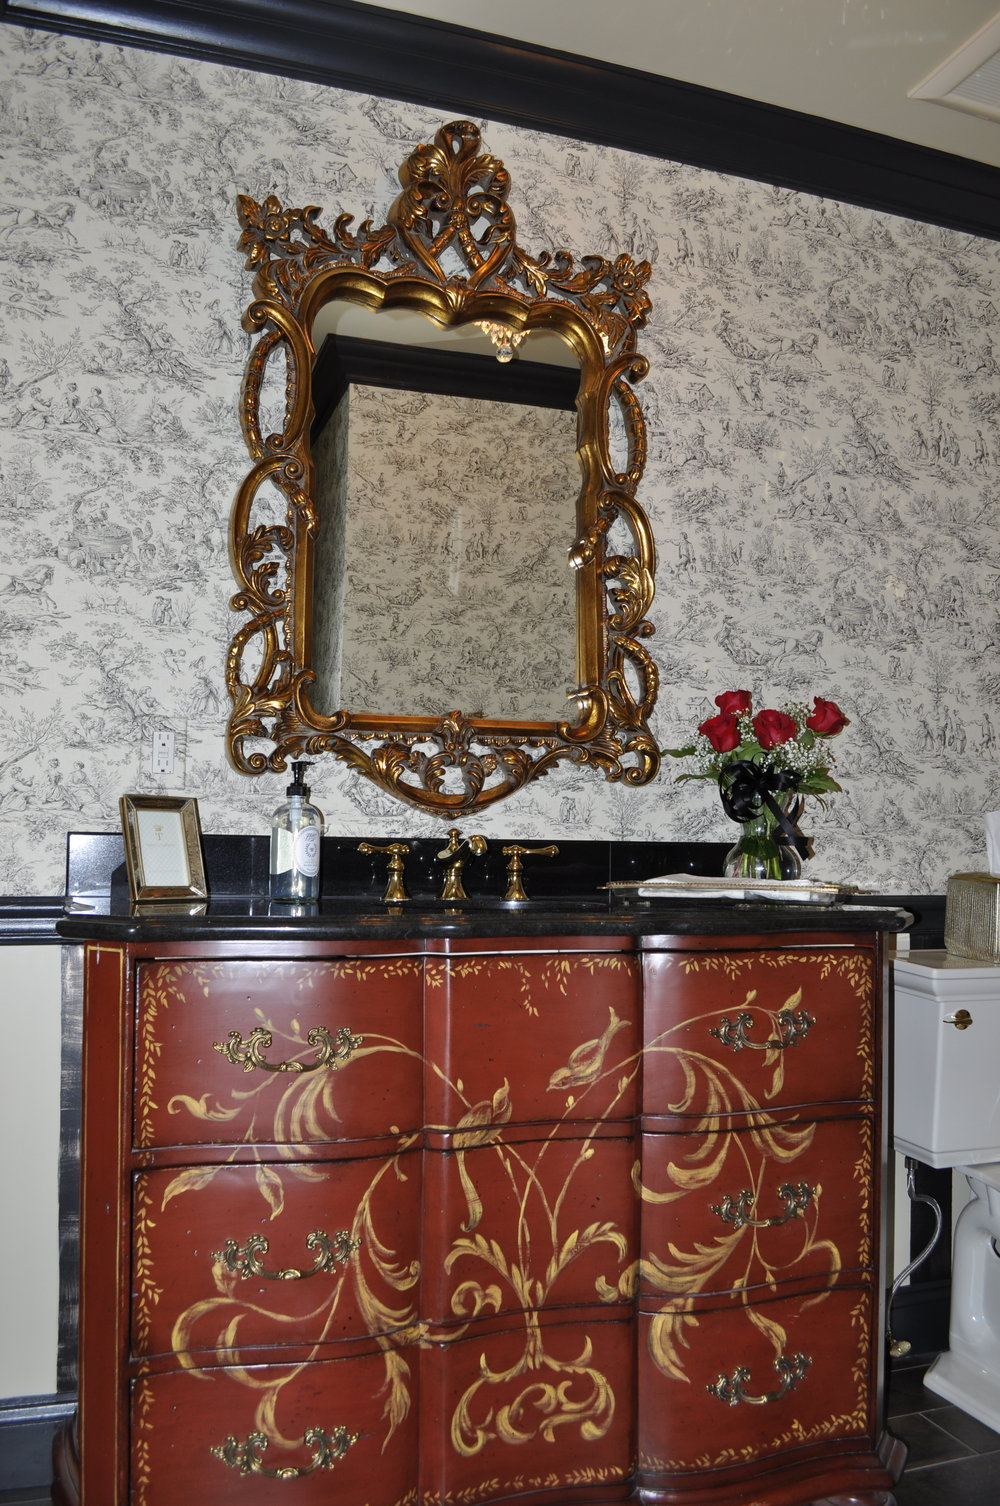 After:  The converted chest and the simple black granite are the perfect pairing. The gold, hand-painted scroll work complements the ornate mirror while beautifully balancing the toile wallpaper. The chic accessories round out the design. No detail is overlooked!